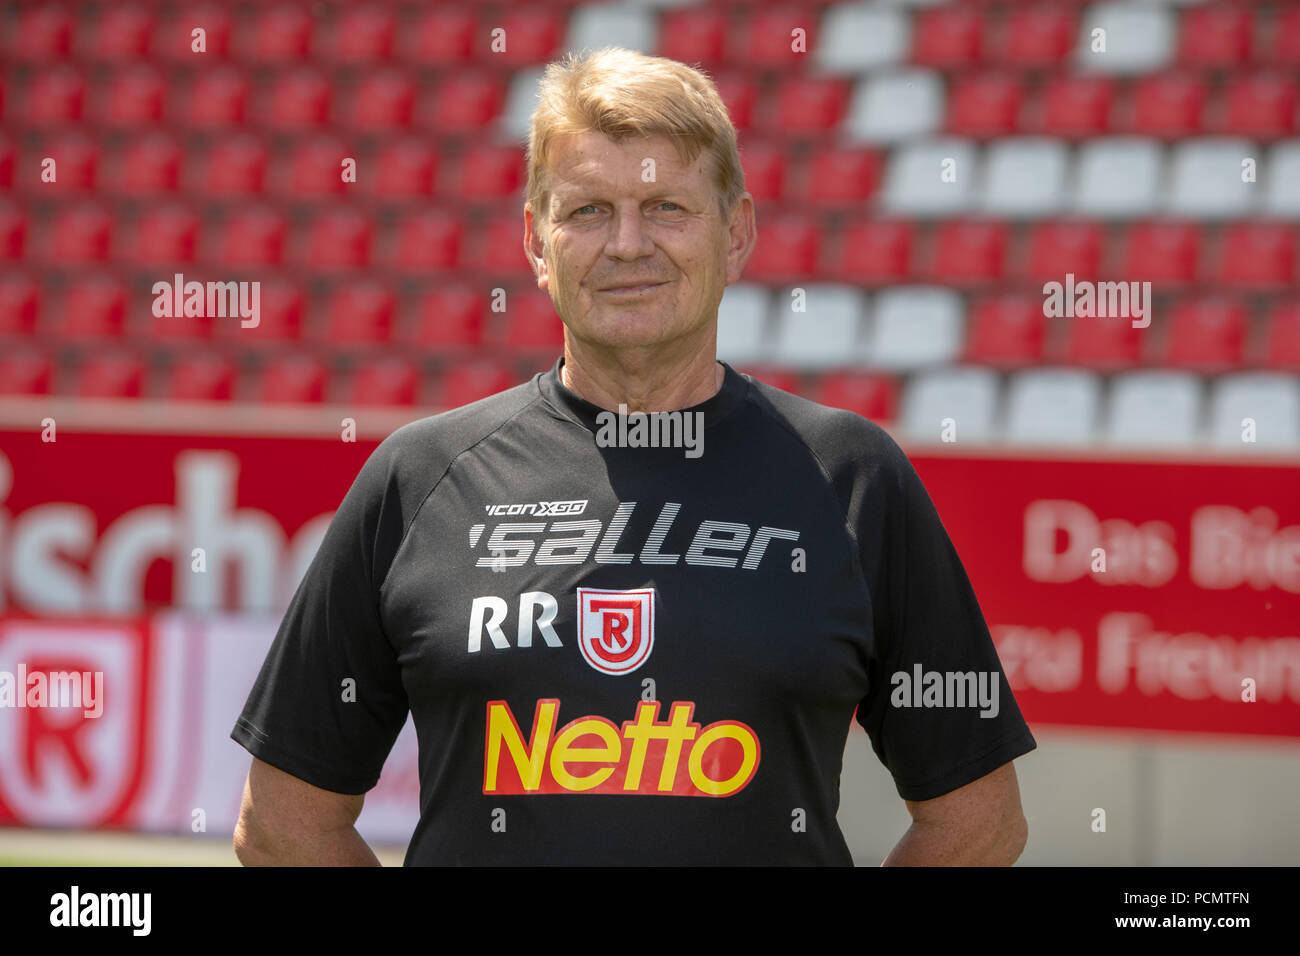 Regensburg, Germany. 17th July, 2018. 2nd German Bundesliga, official photocall SSV Jahn Regensburg for season 2018/19 in Regensburg, Germany: kitman Reinhold Reisinger; Credit: Armin Weigel/dpa | usage worldwide/dpa/Alamy Live News - Stock Image